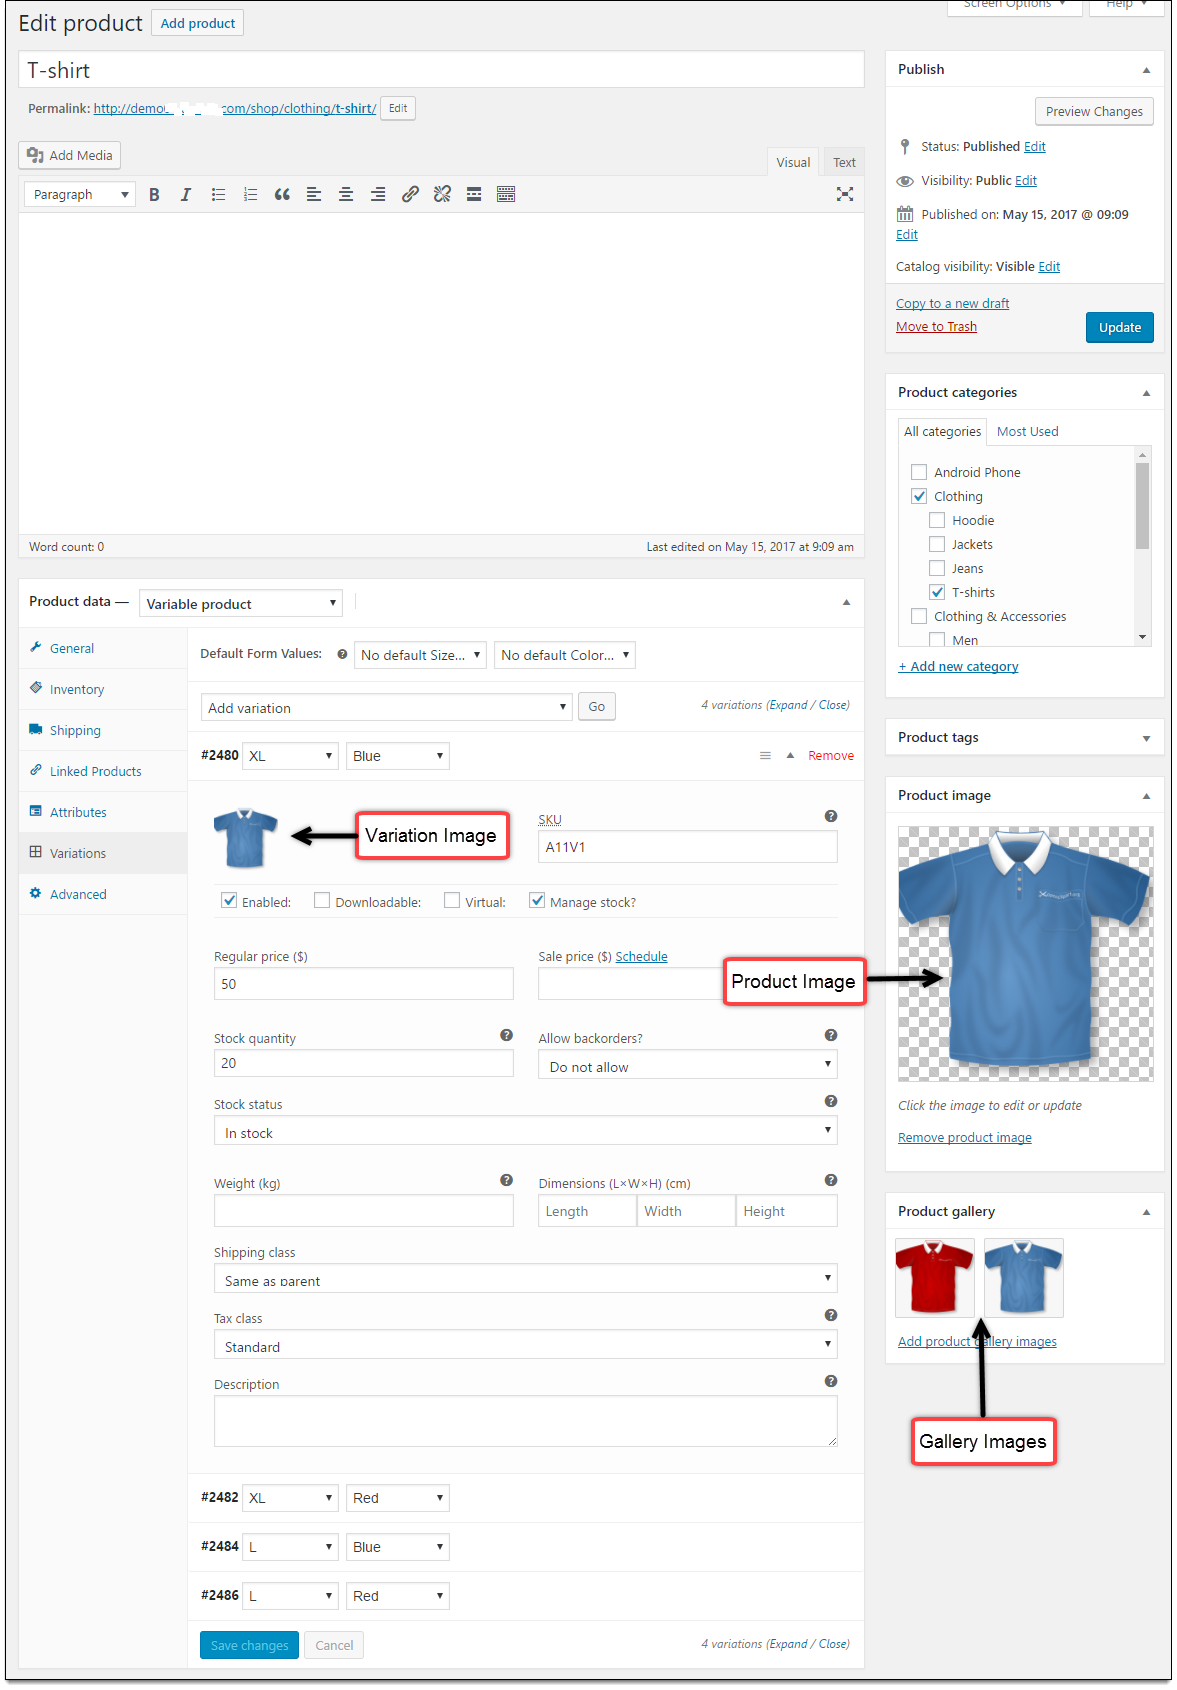 Image added on the Edit Product page